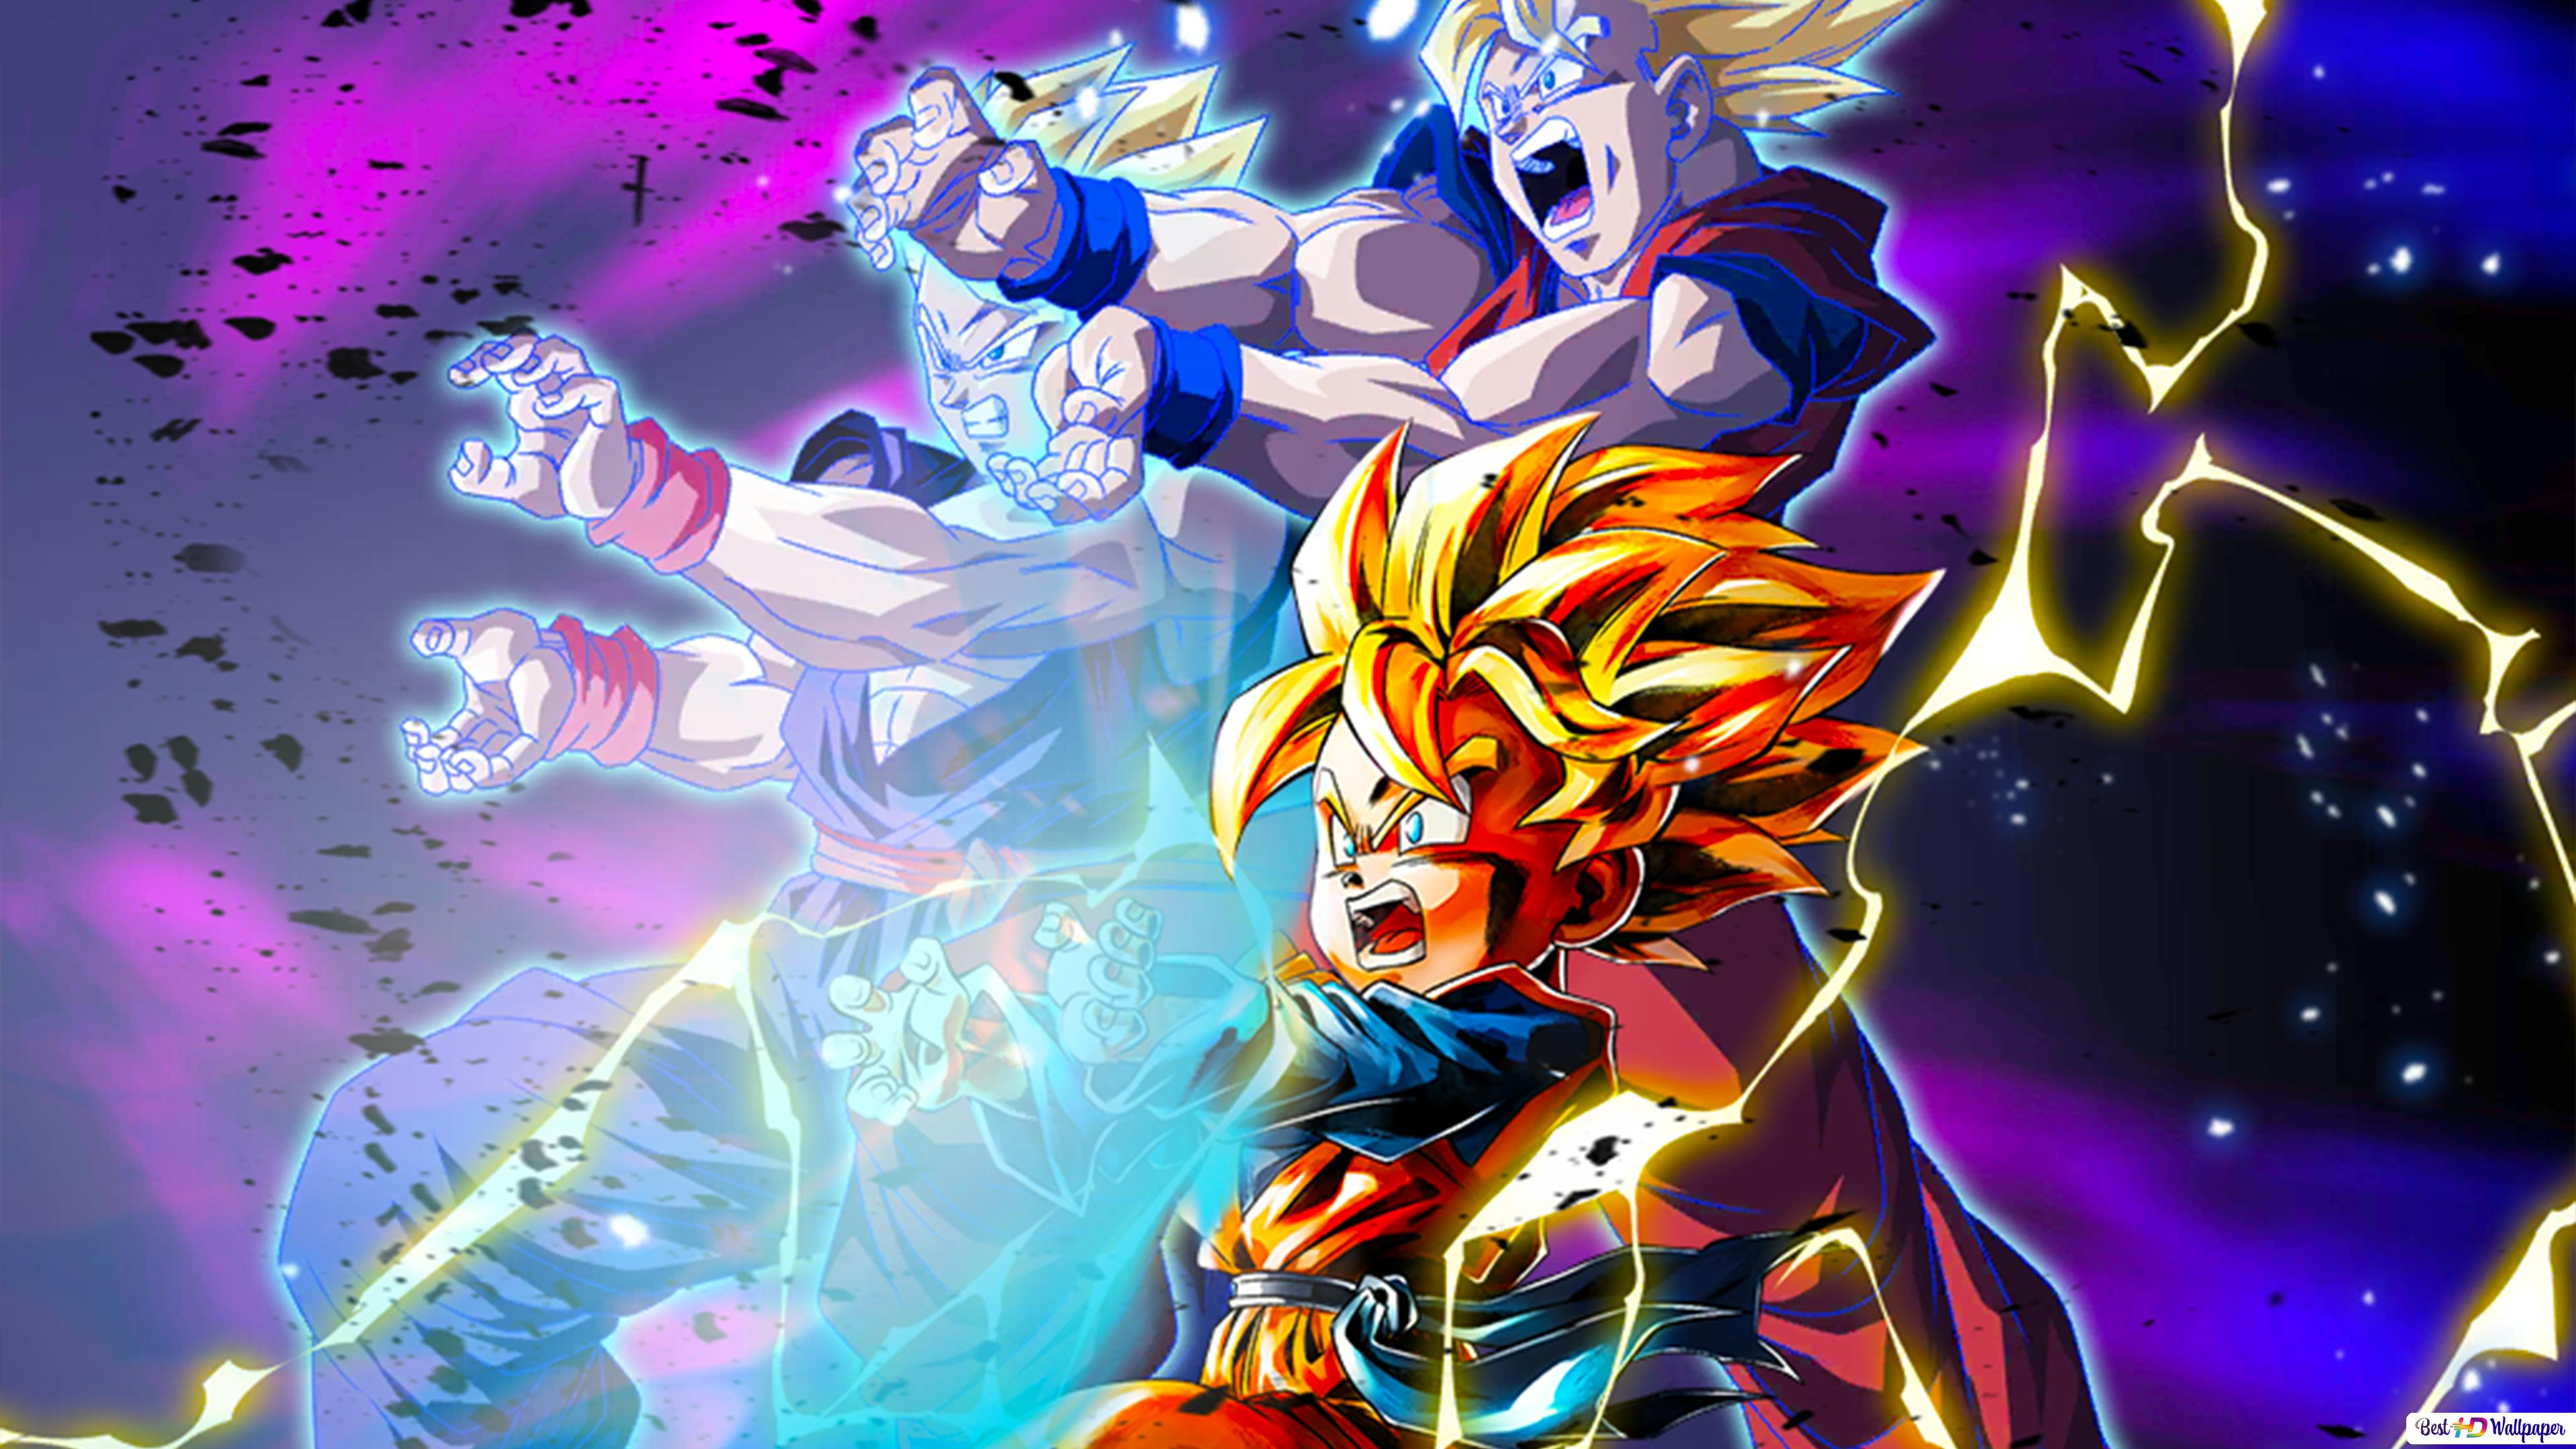 Super Saiyan Goten From Dragon Ball Z Dragon Ball Legends Arts For Desktop Hd Wallpaper Download